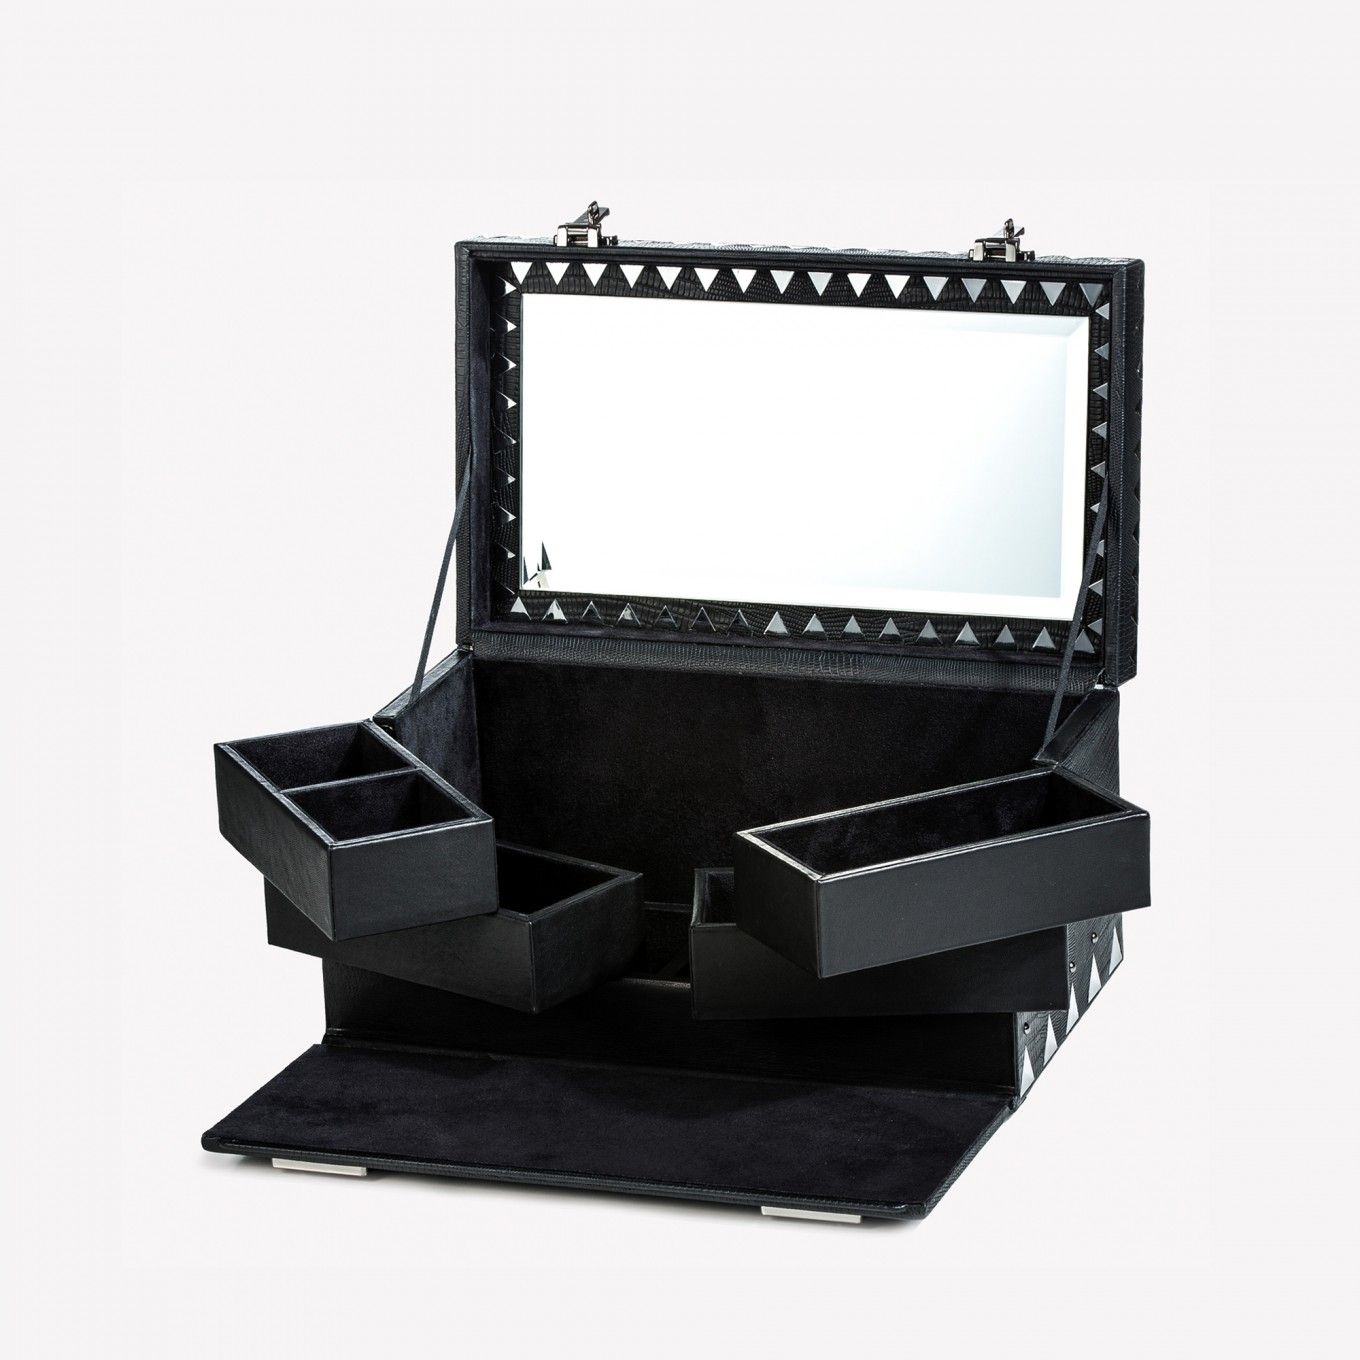 EDDIE BORGO JEWELRY BOX Black Eddie Borgo Jewellery boxes